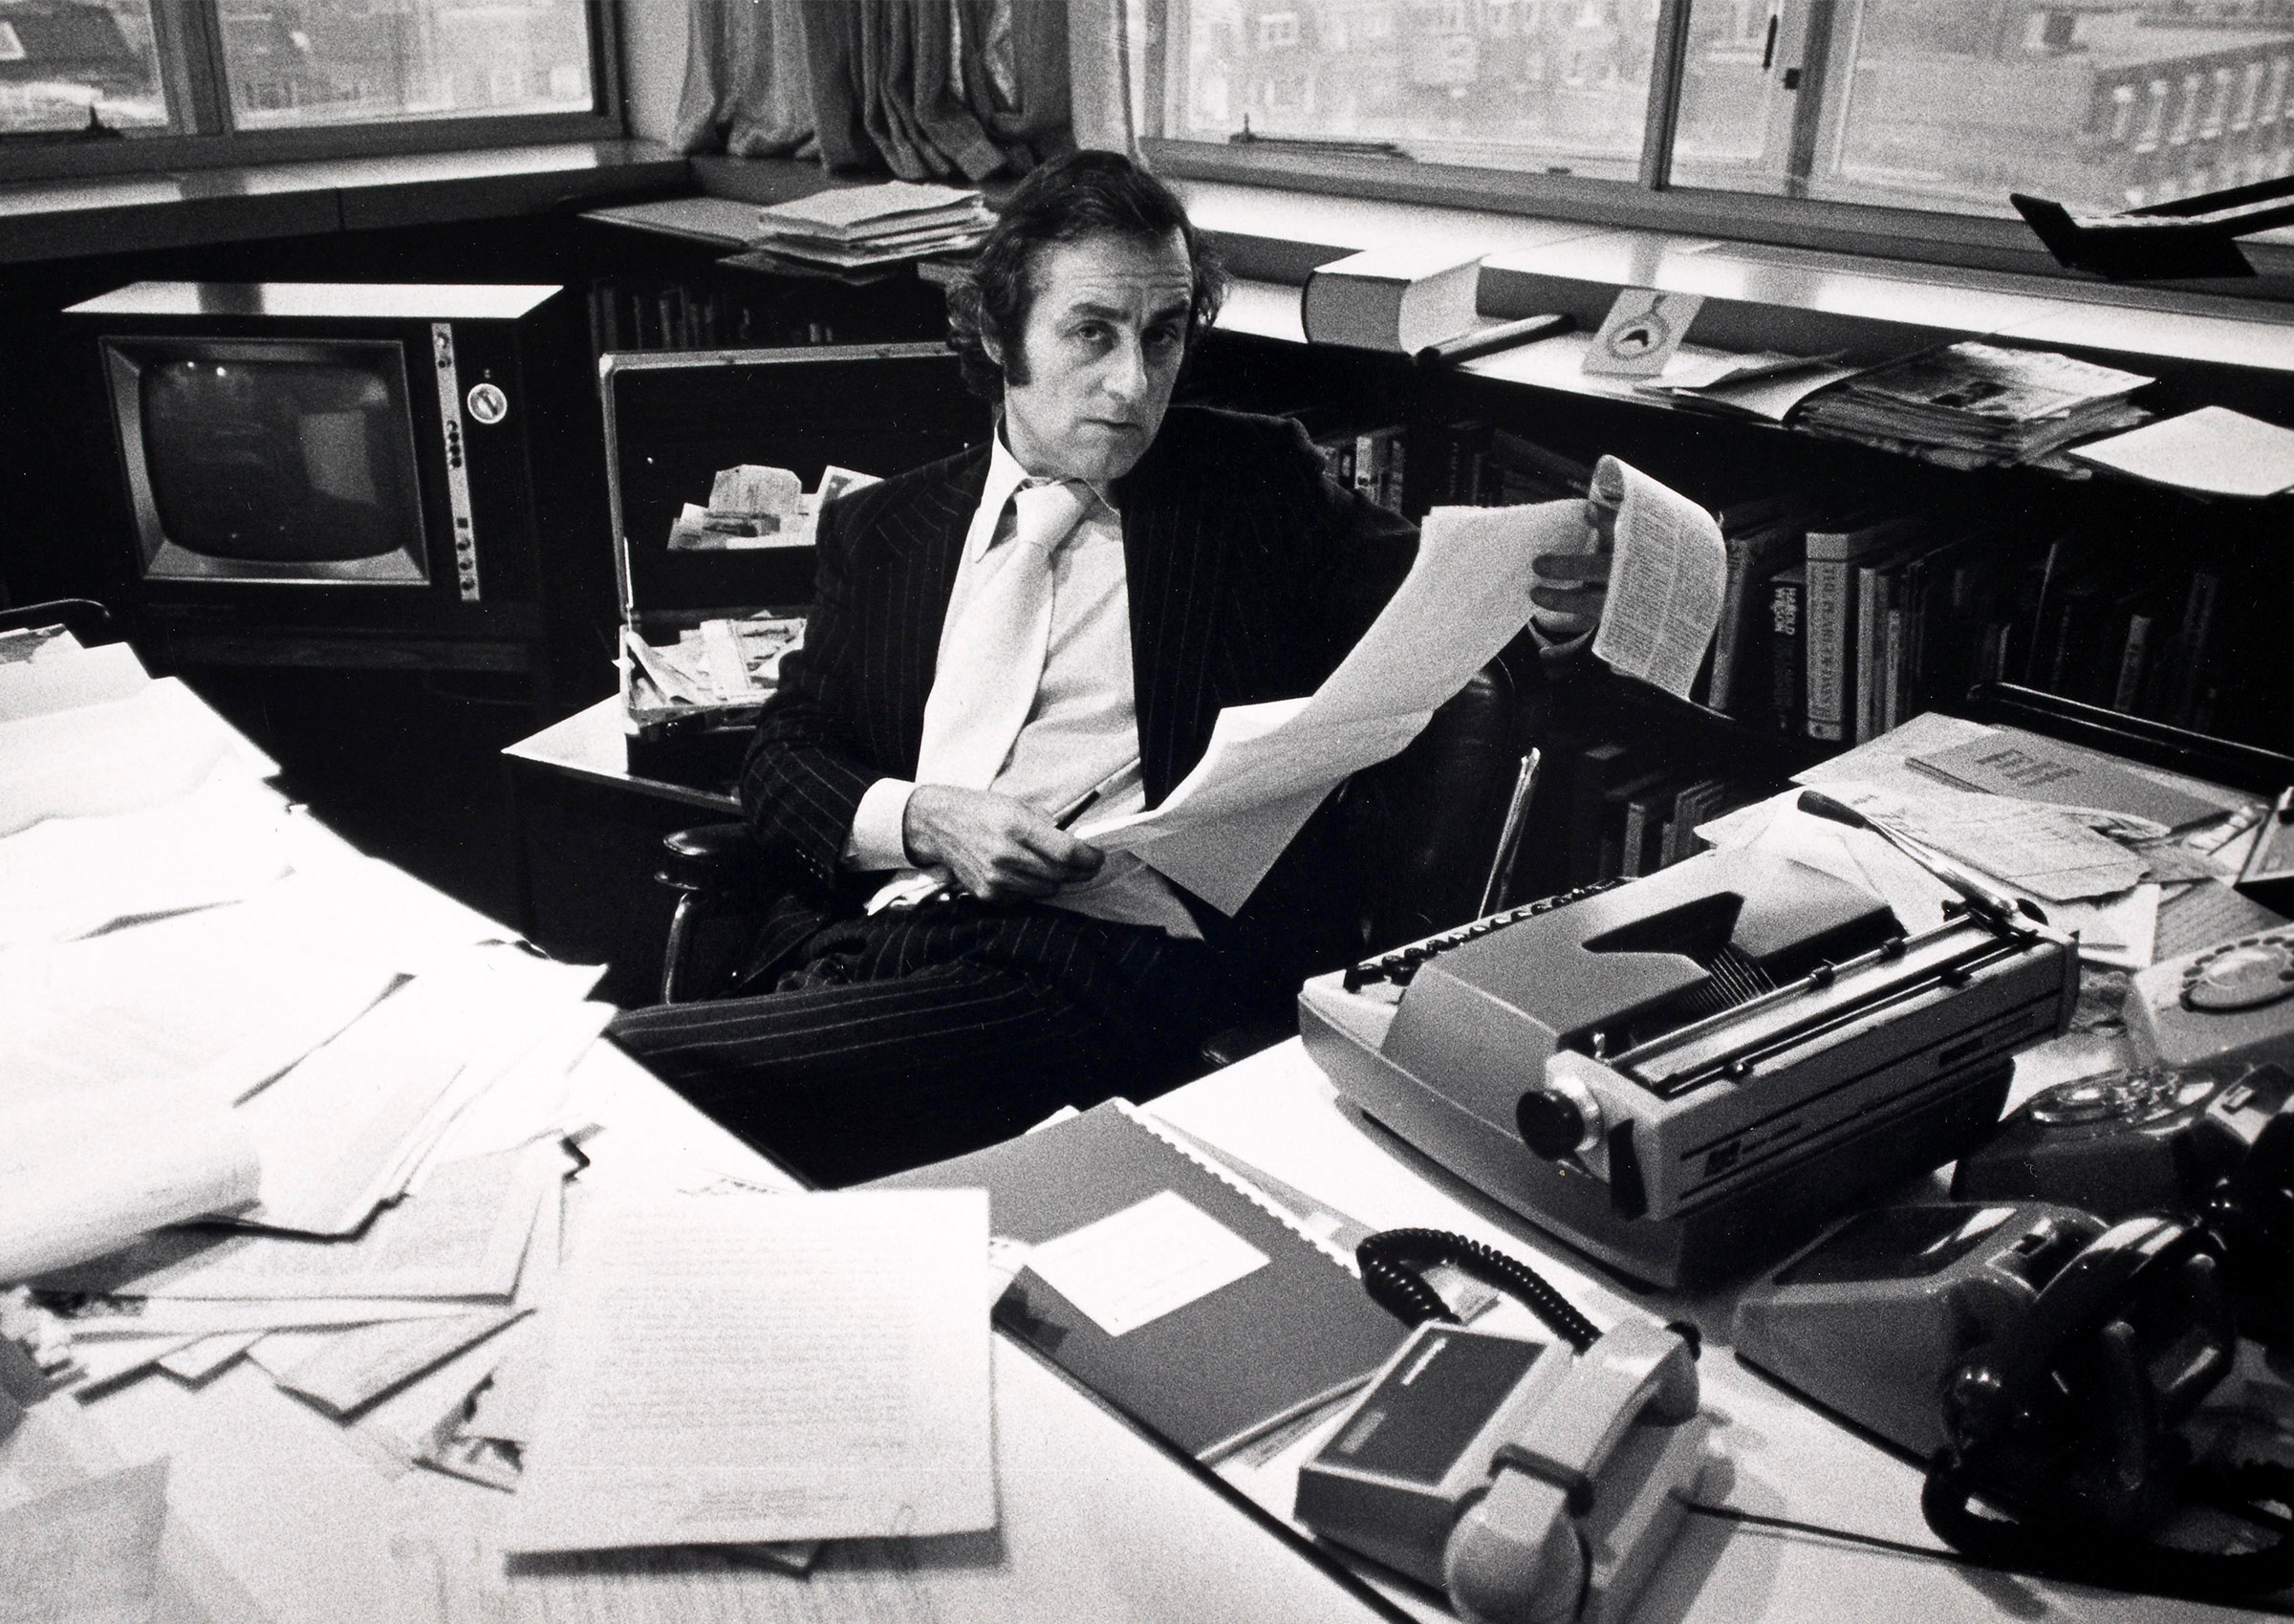 Sir Harold Evans, the British-American newspaper editor and publisher, died at the age of 92 in New York on September 23, 2020.